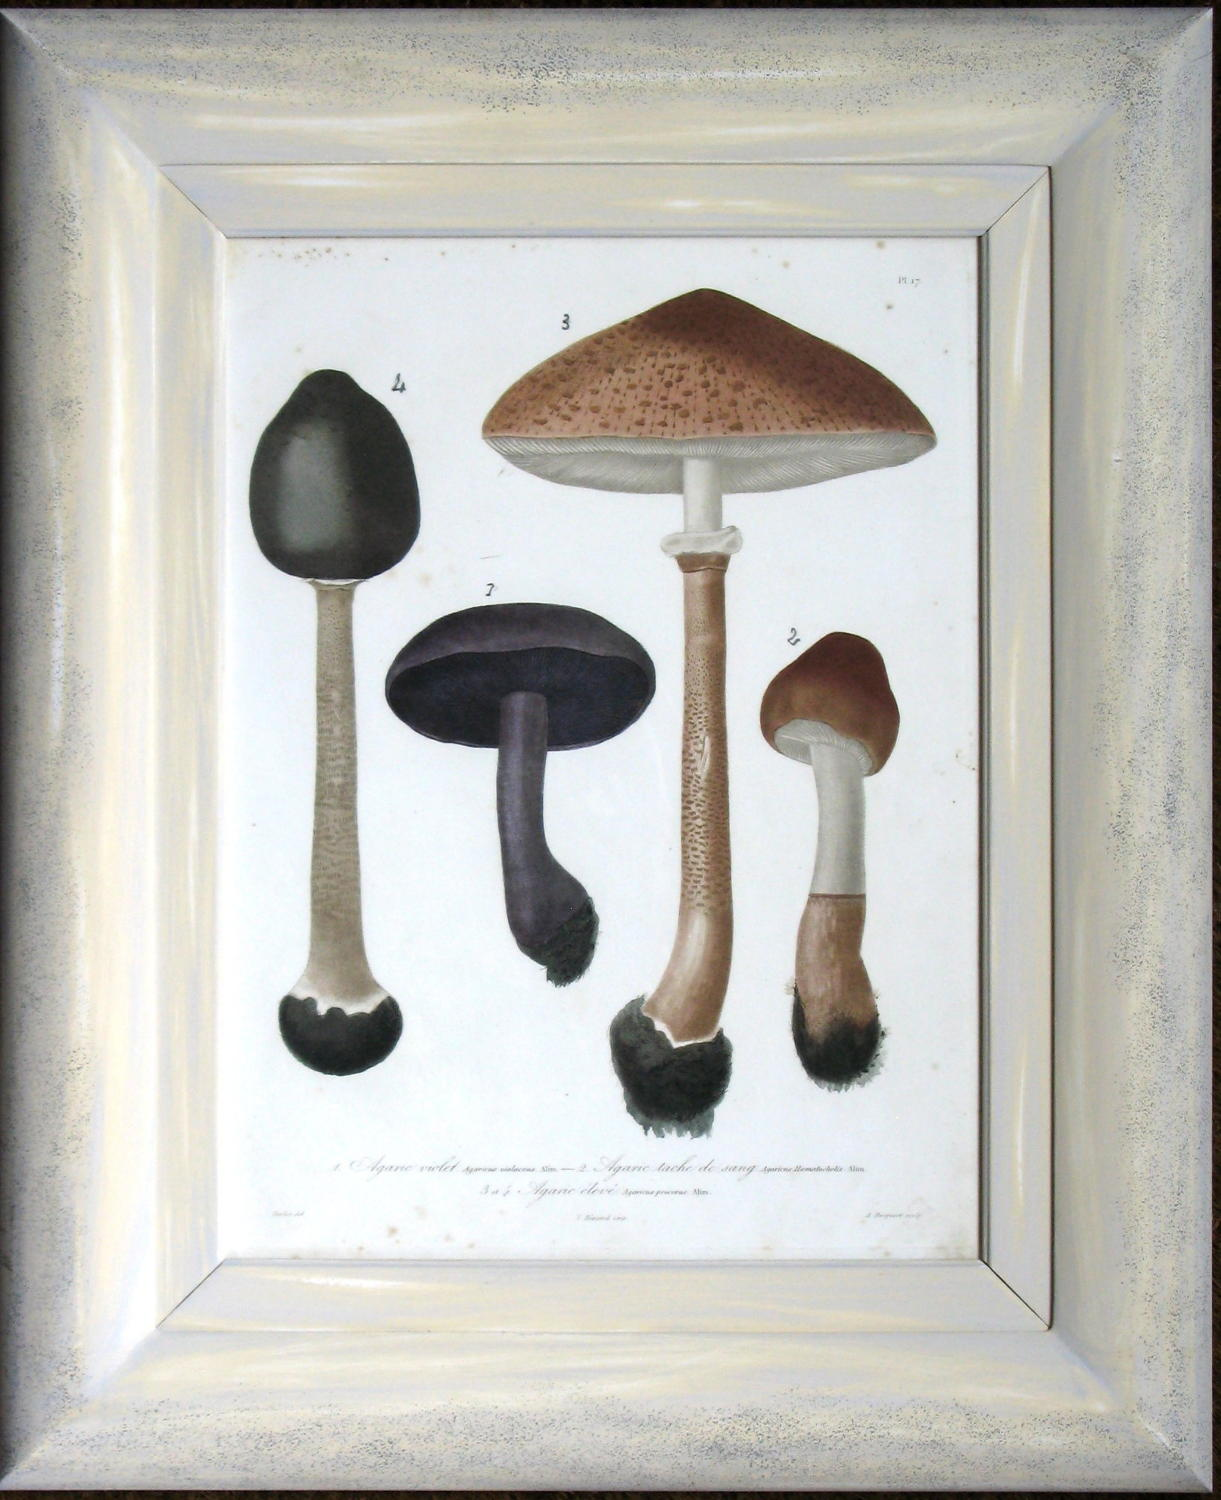 Roques Engravings of Mushrooms